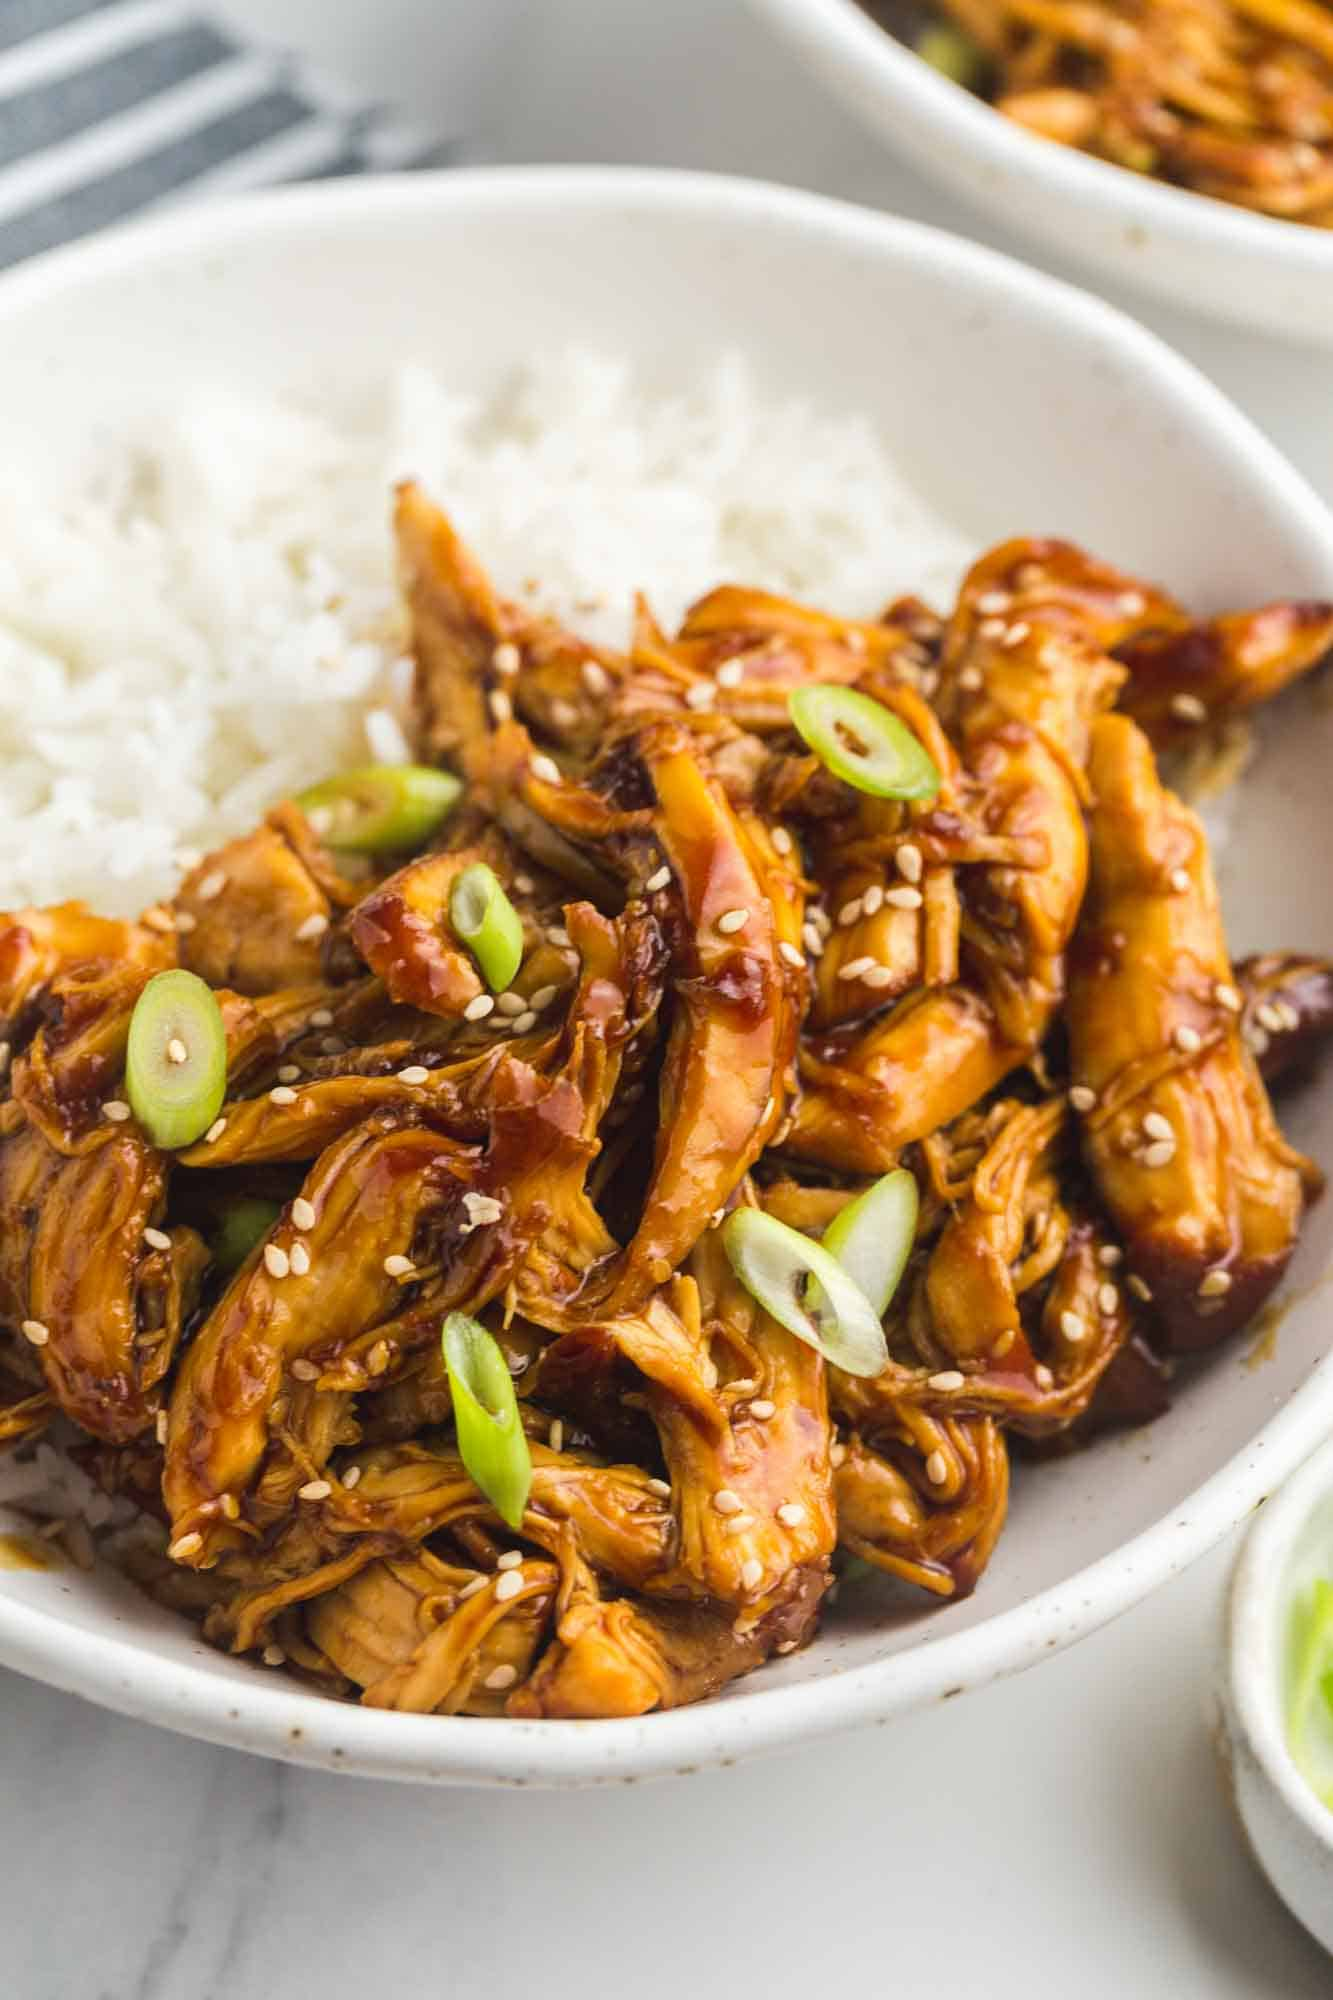 Slow Cooker Teriyaki Chicken served in a white bowl over rice, with toasted sesame seeds and sliced scallions